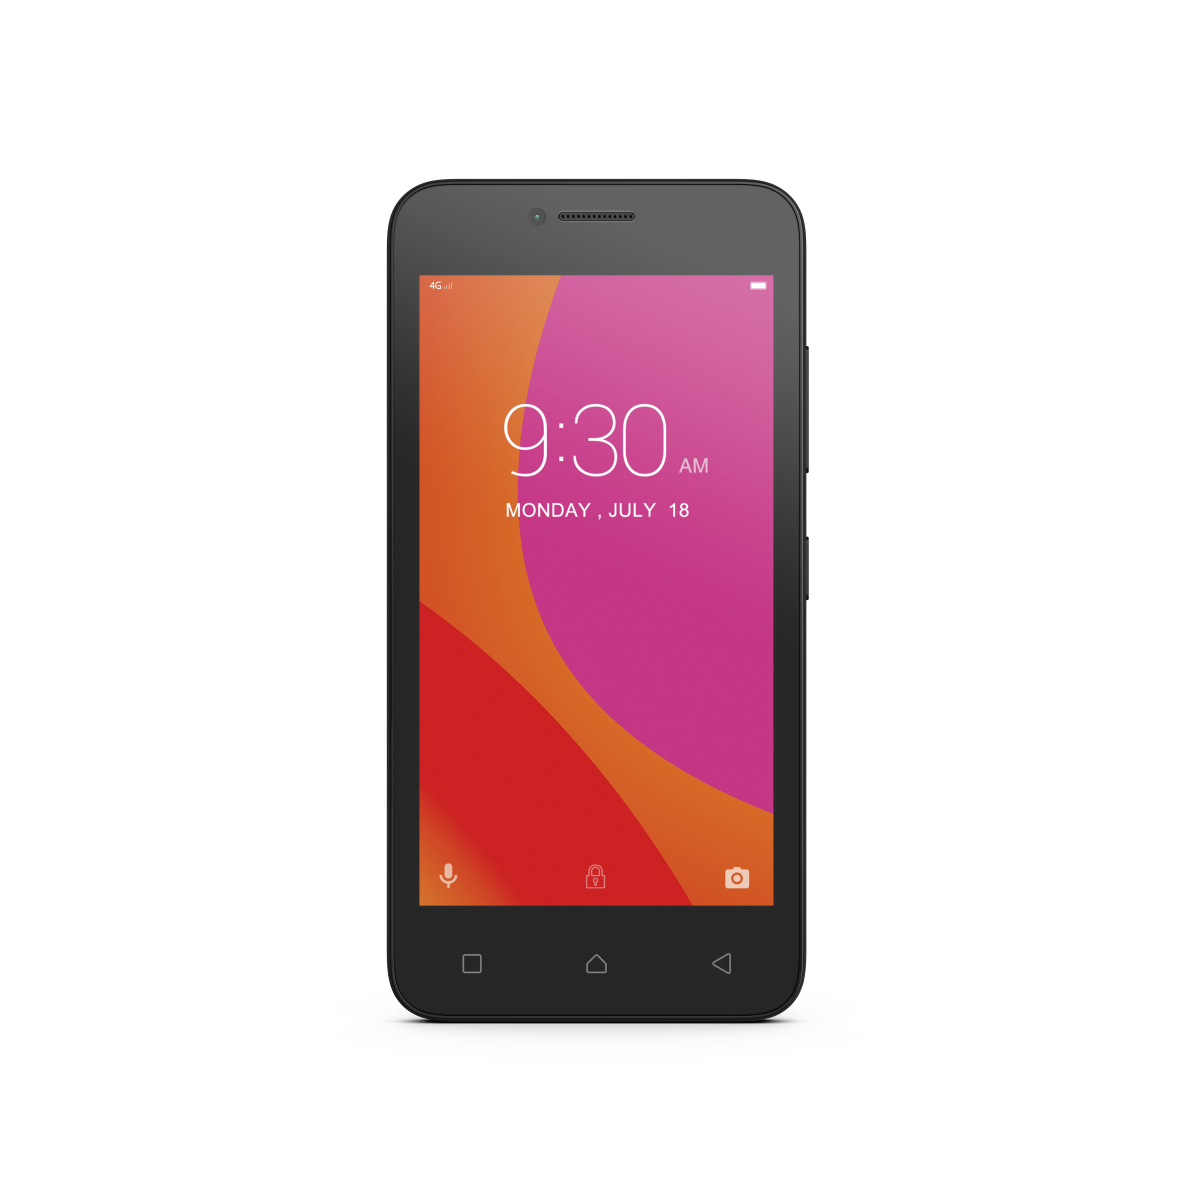 Lenovo B Smartphone (11,4 cm (4,5 Zoll), 8 GB, Android) Schwarz